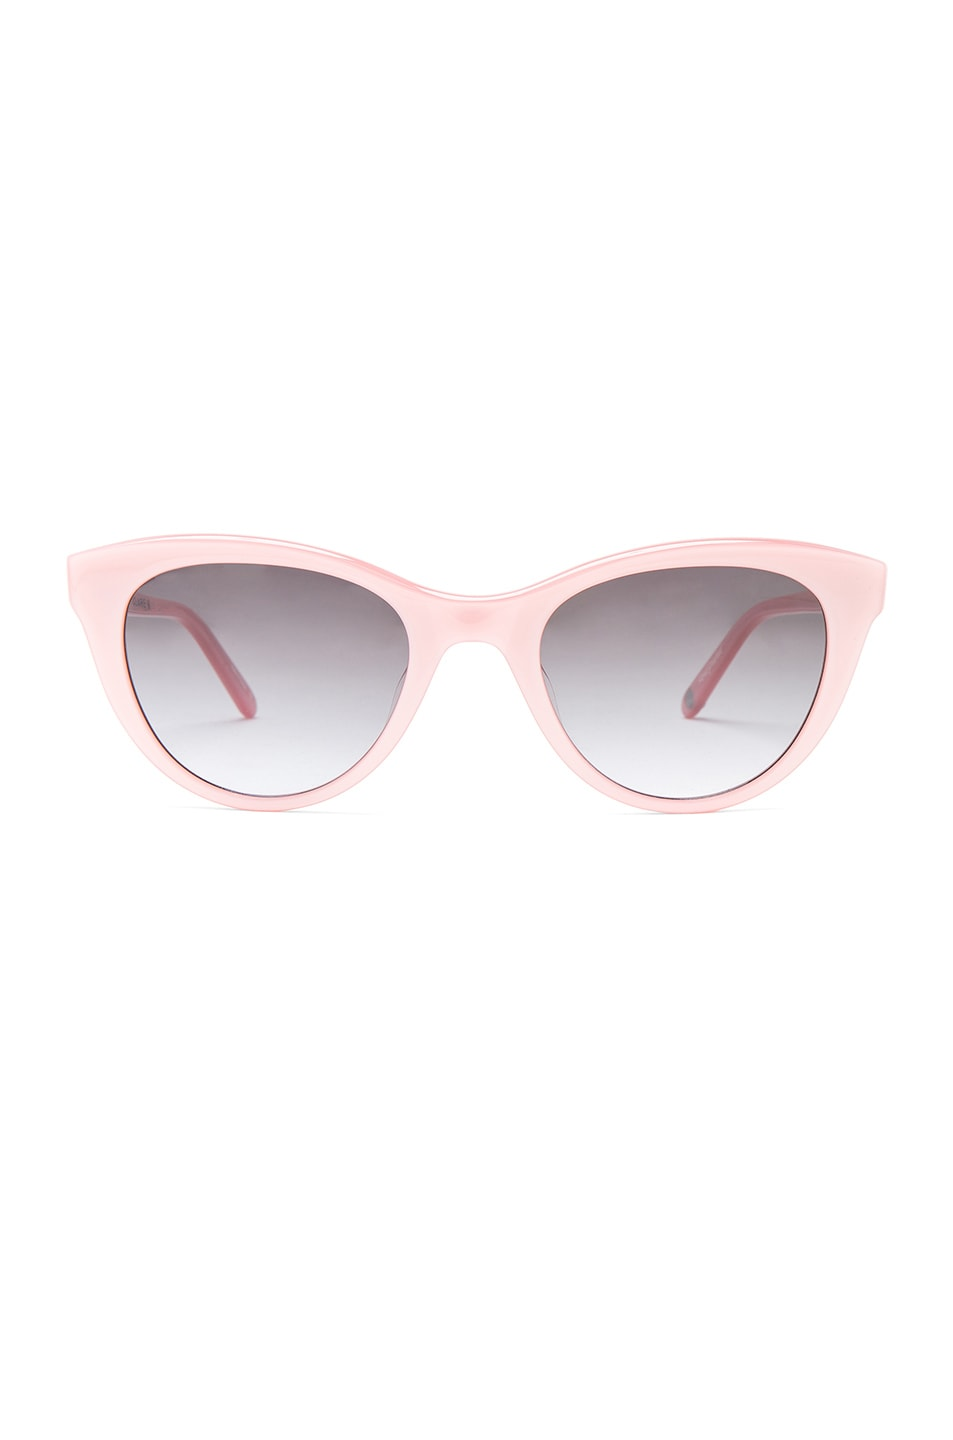 7d895ac0dc Image 1 of Garrett Leight x Clare Vivier Sunglasses in Blush